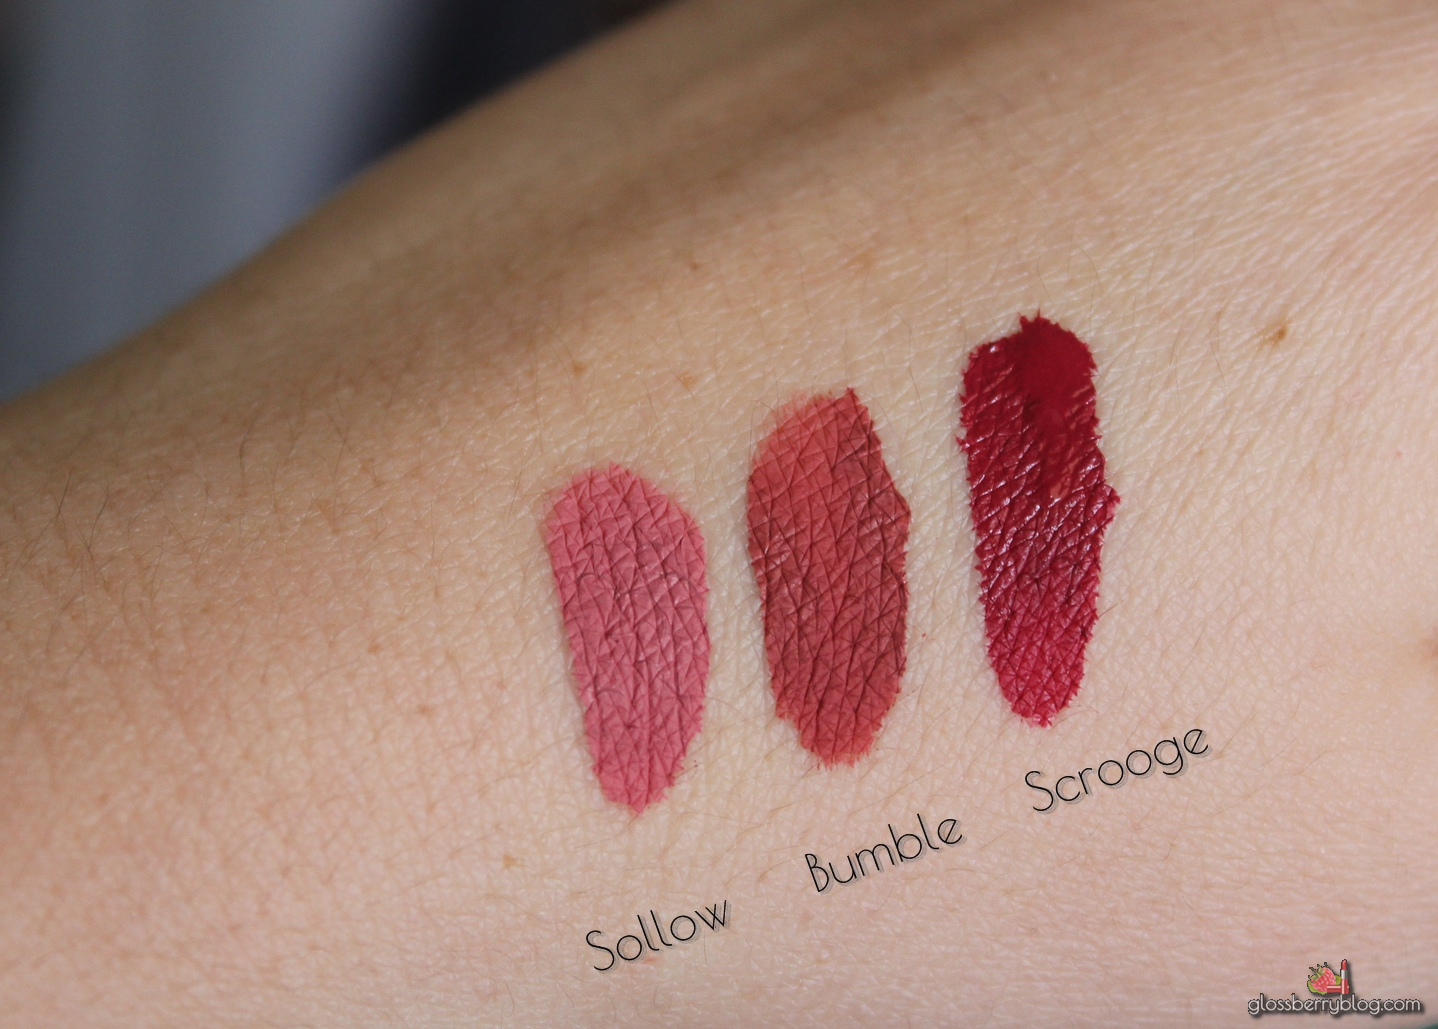 colourpop ultra matte lip lipstick lipcolor solow scrooge bumble nude sollow review swatchesק קולור פופ קולורפופ שפתון נוזלי מאט סקירה המלצות גלוסברי בלוג איפור וטיפוח